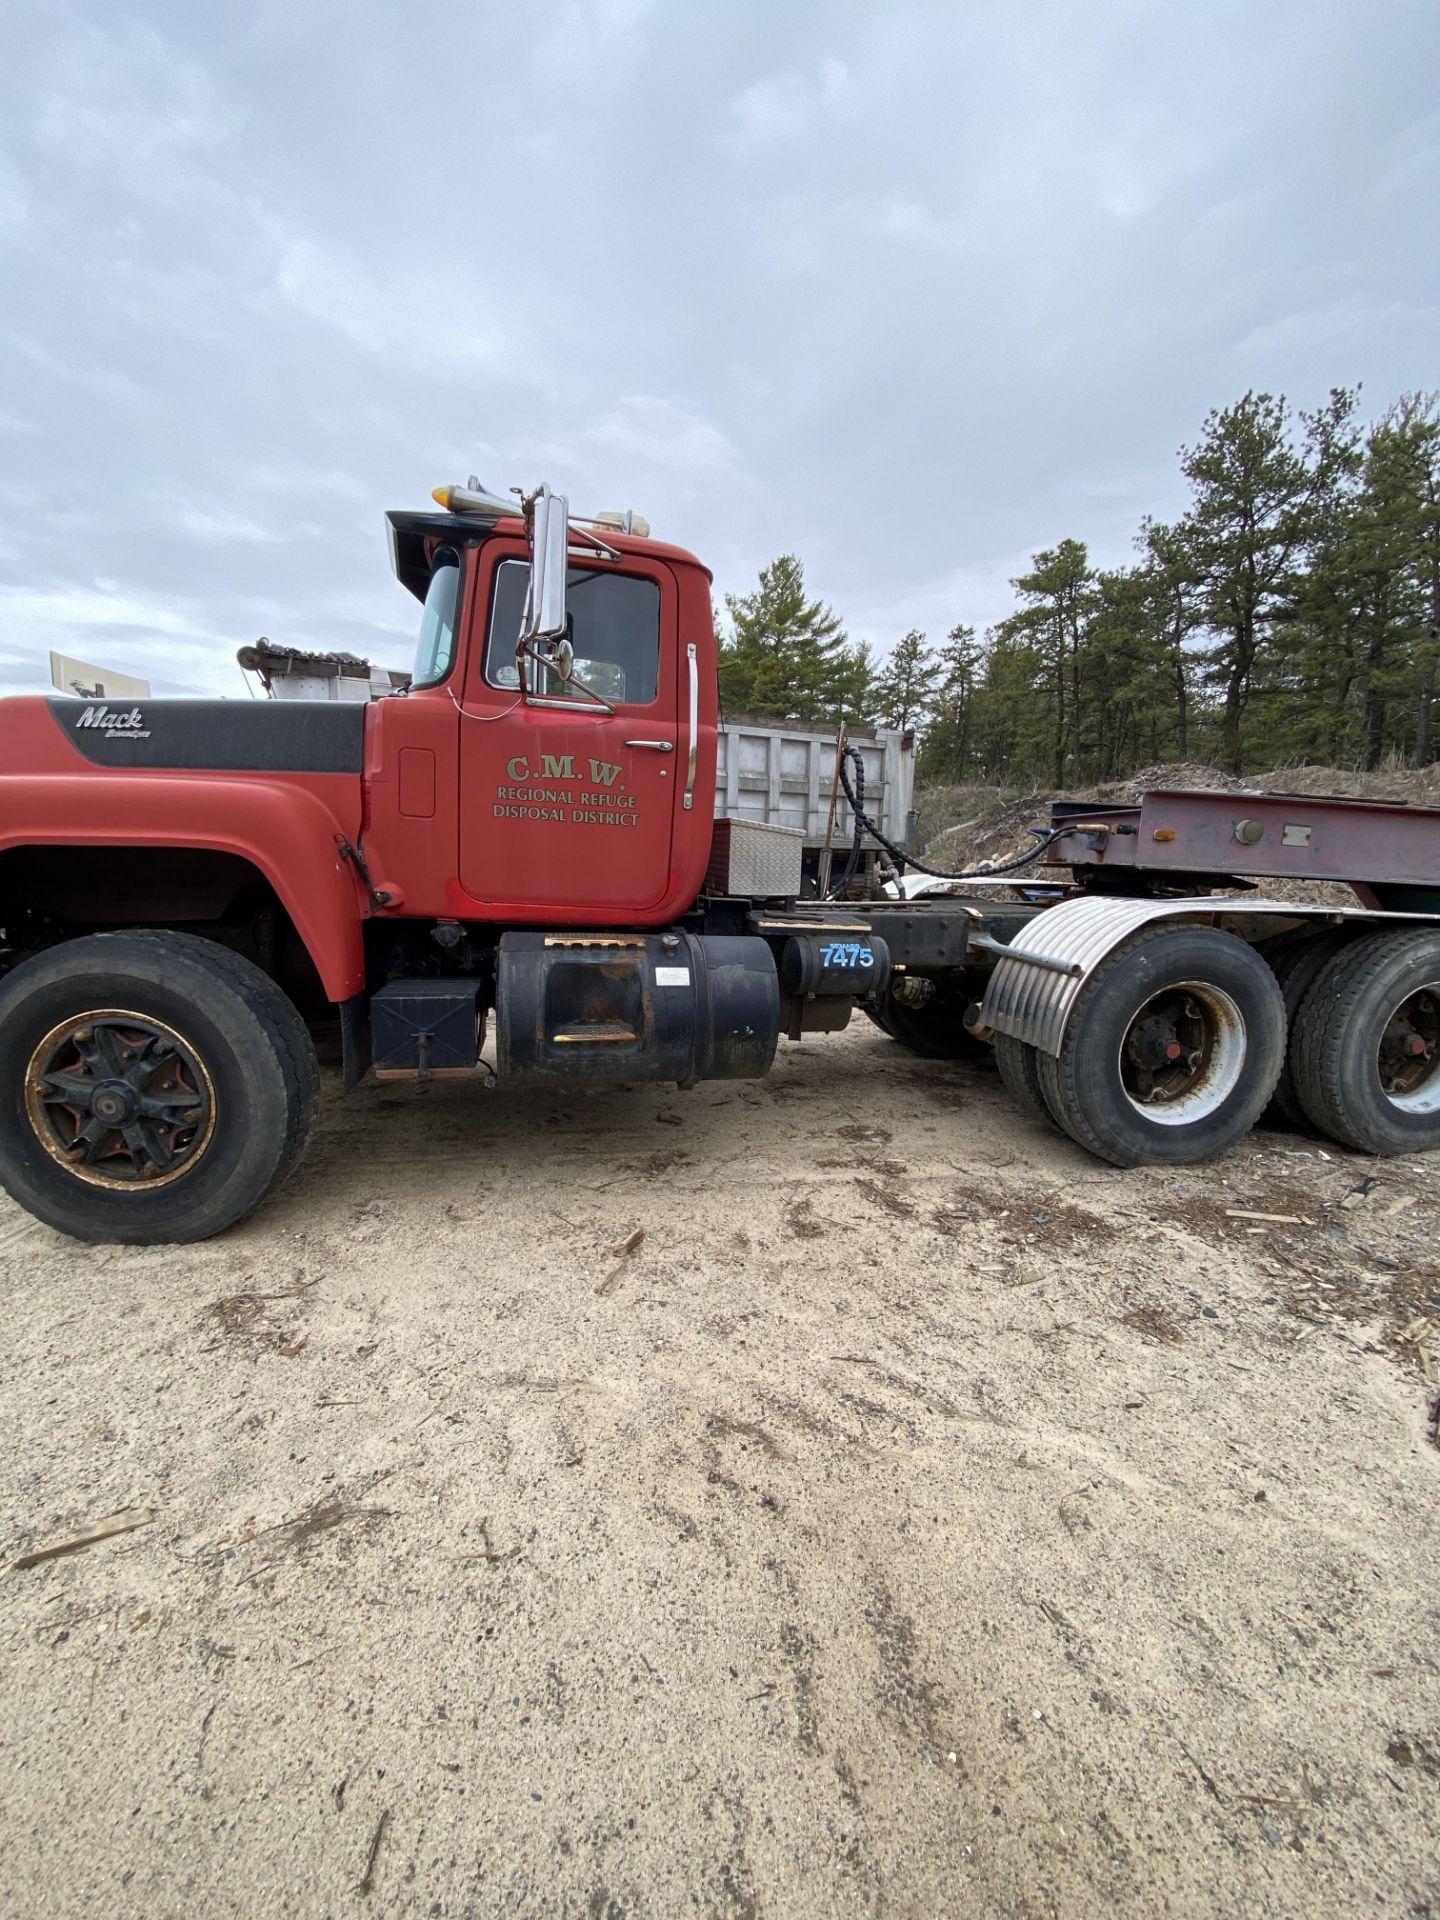 1986 Mack RD688SX Tandem Axle Tractor VIN 1M2P143Y8GA004351, Meter Reads 301,625 Miles, Day Cab, - Image 4 of 22